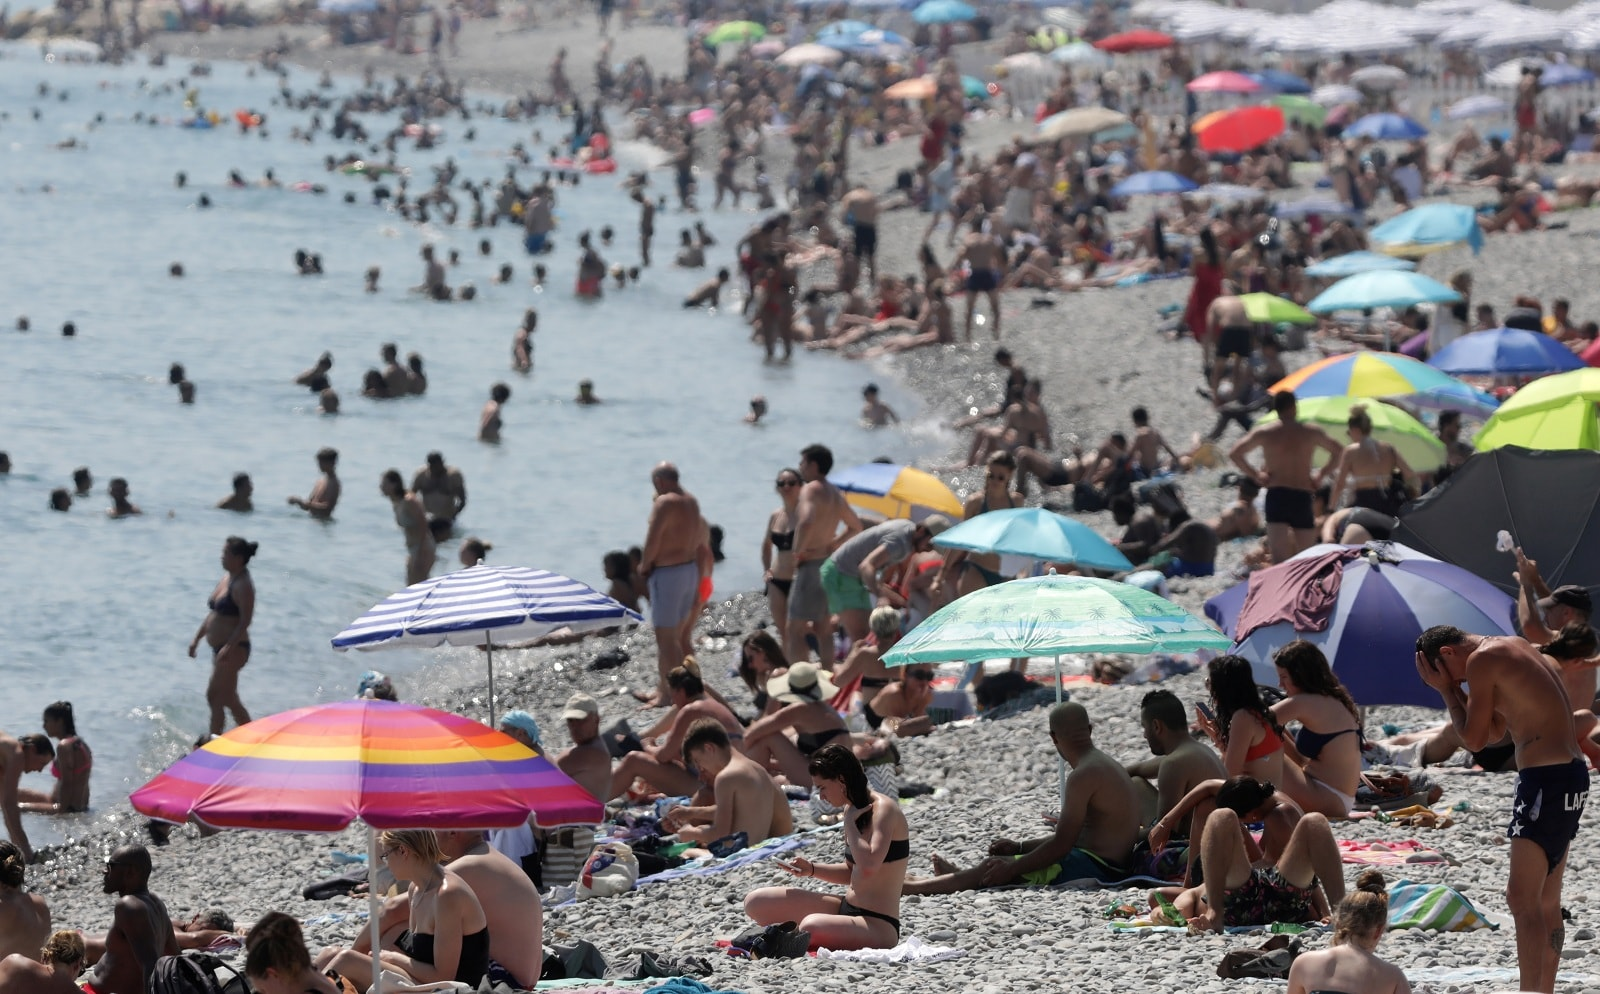 People cool off in the sea in Nice as a heatwave hits much of the country, France, June 27, 2019. REUTERS/Eric Gaillard